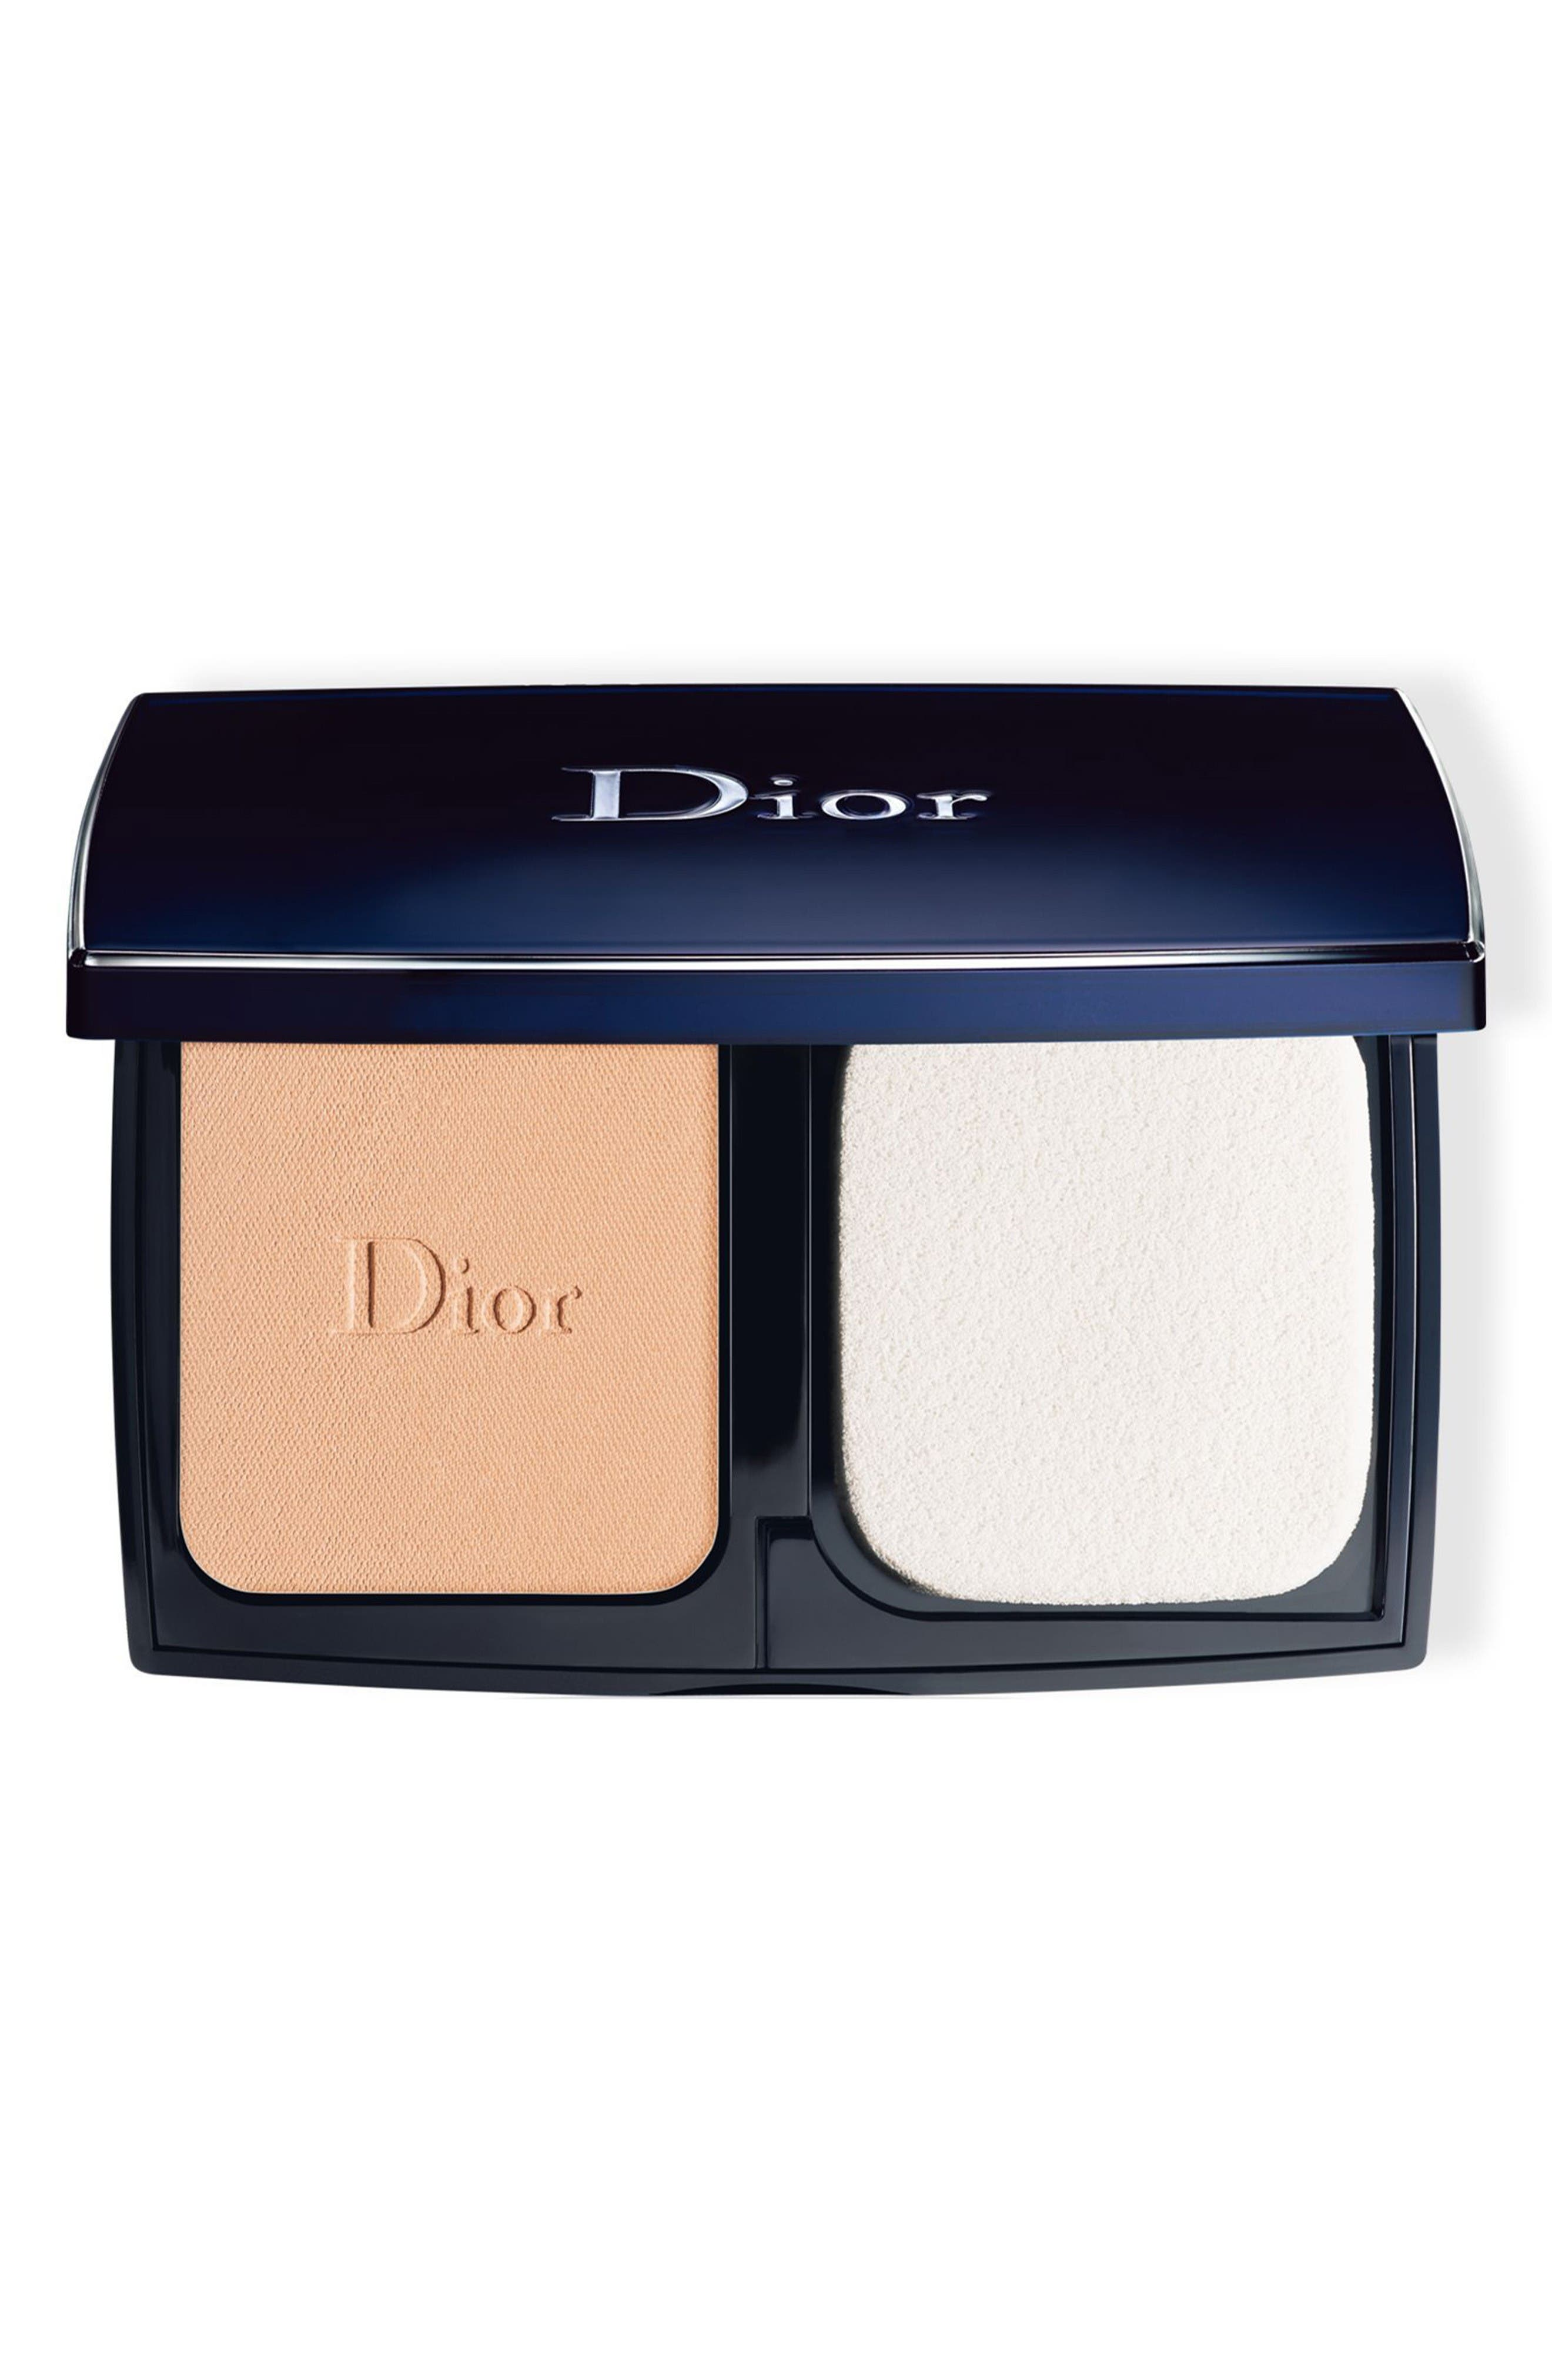 Diorskin Forever Flawless Perfection Fusion Wear Compact Foundation SPF 25,                         Main,                         color, 022 Cameo